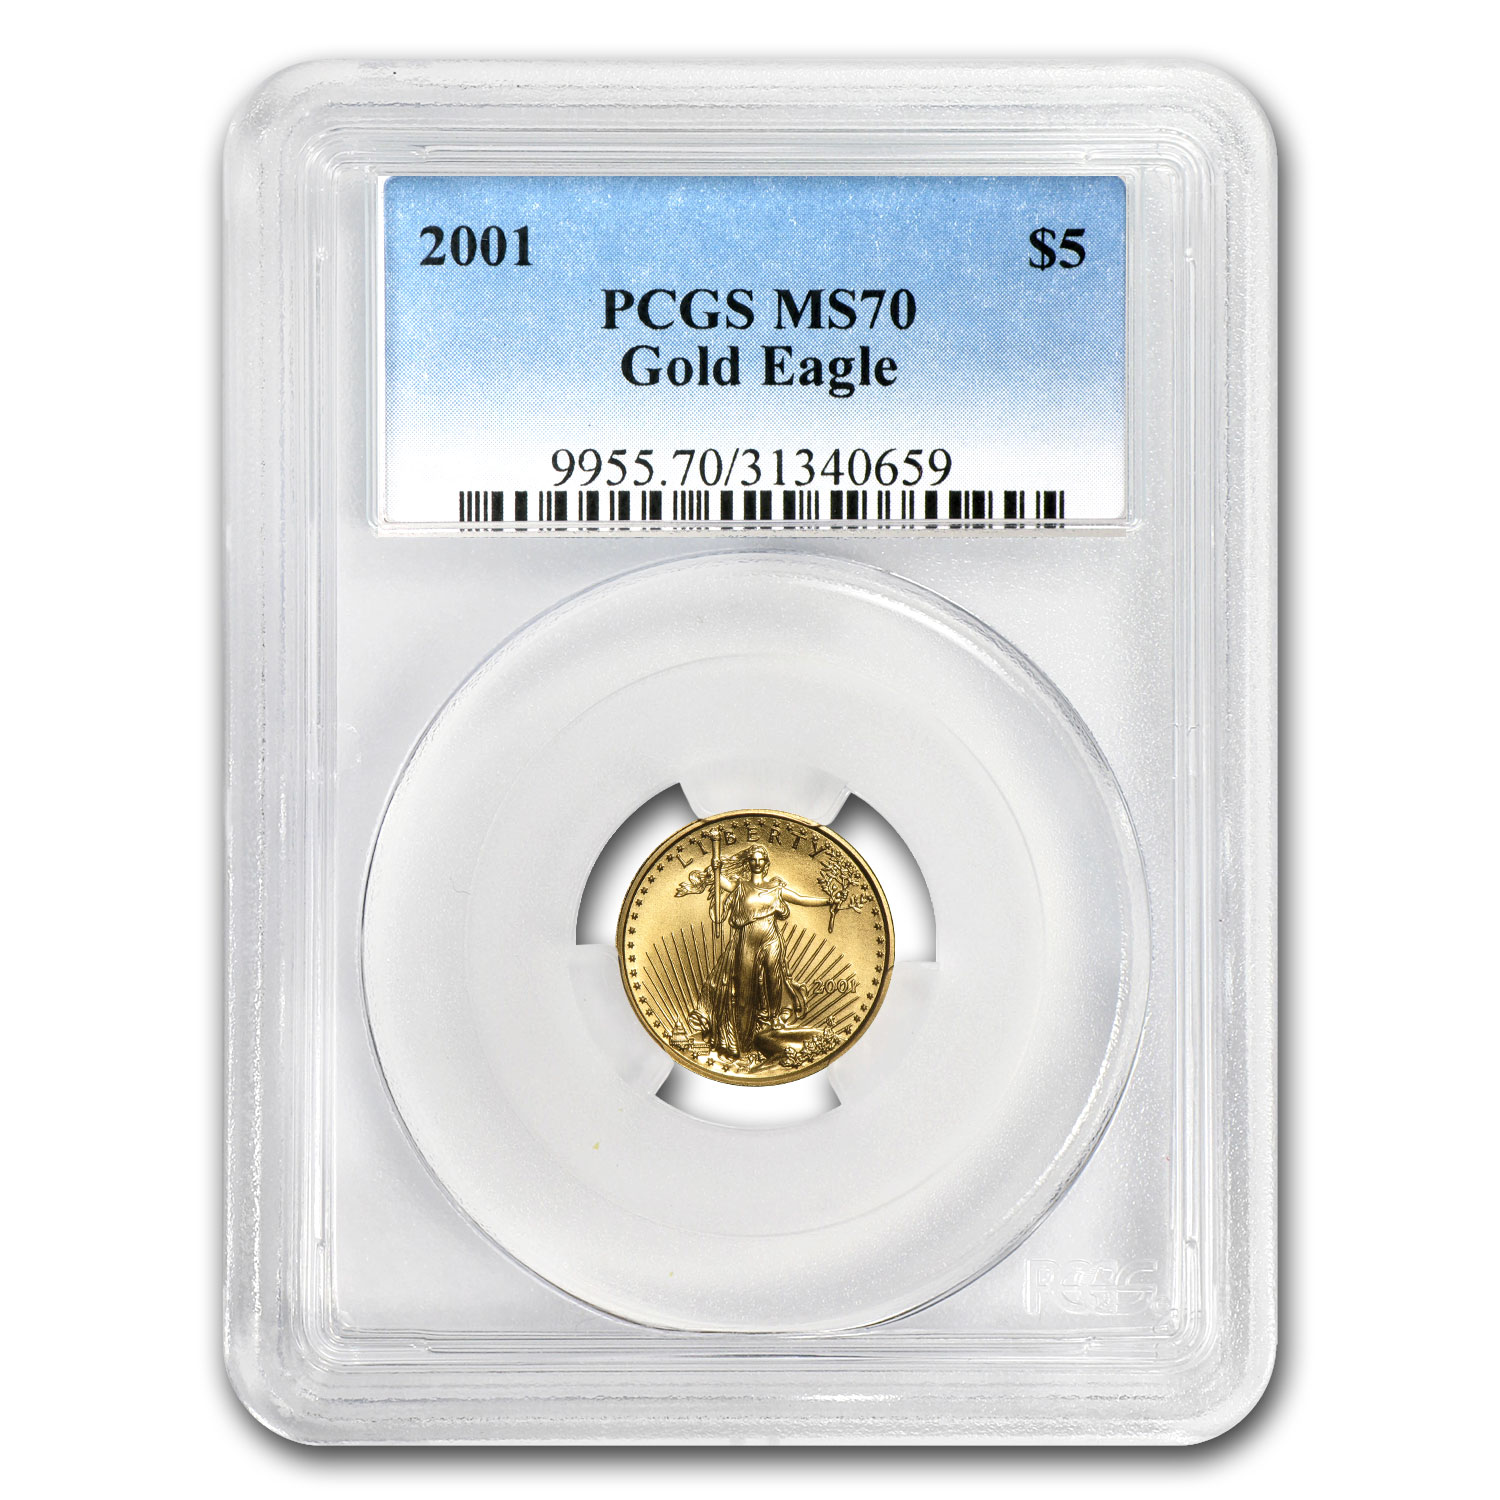 2001 1/10 oz Gold American Eagle MS-70 PCGS